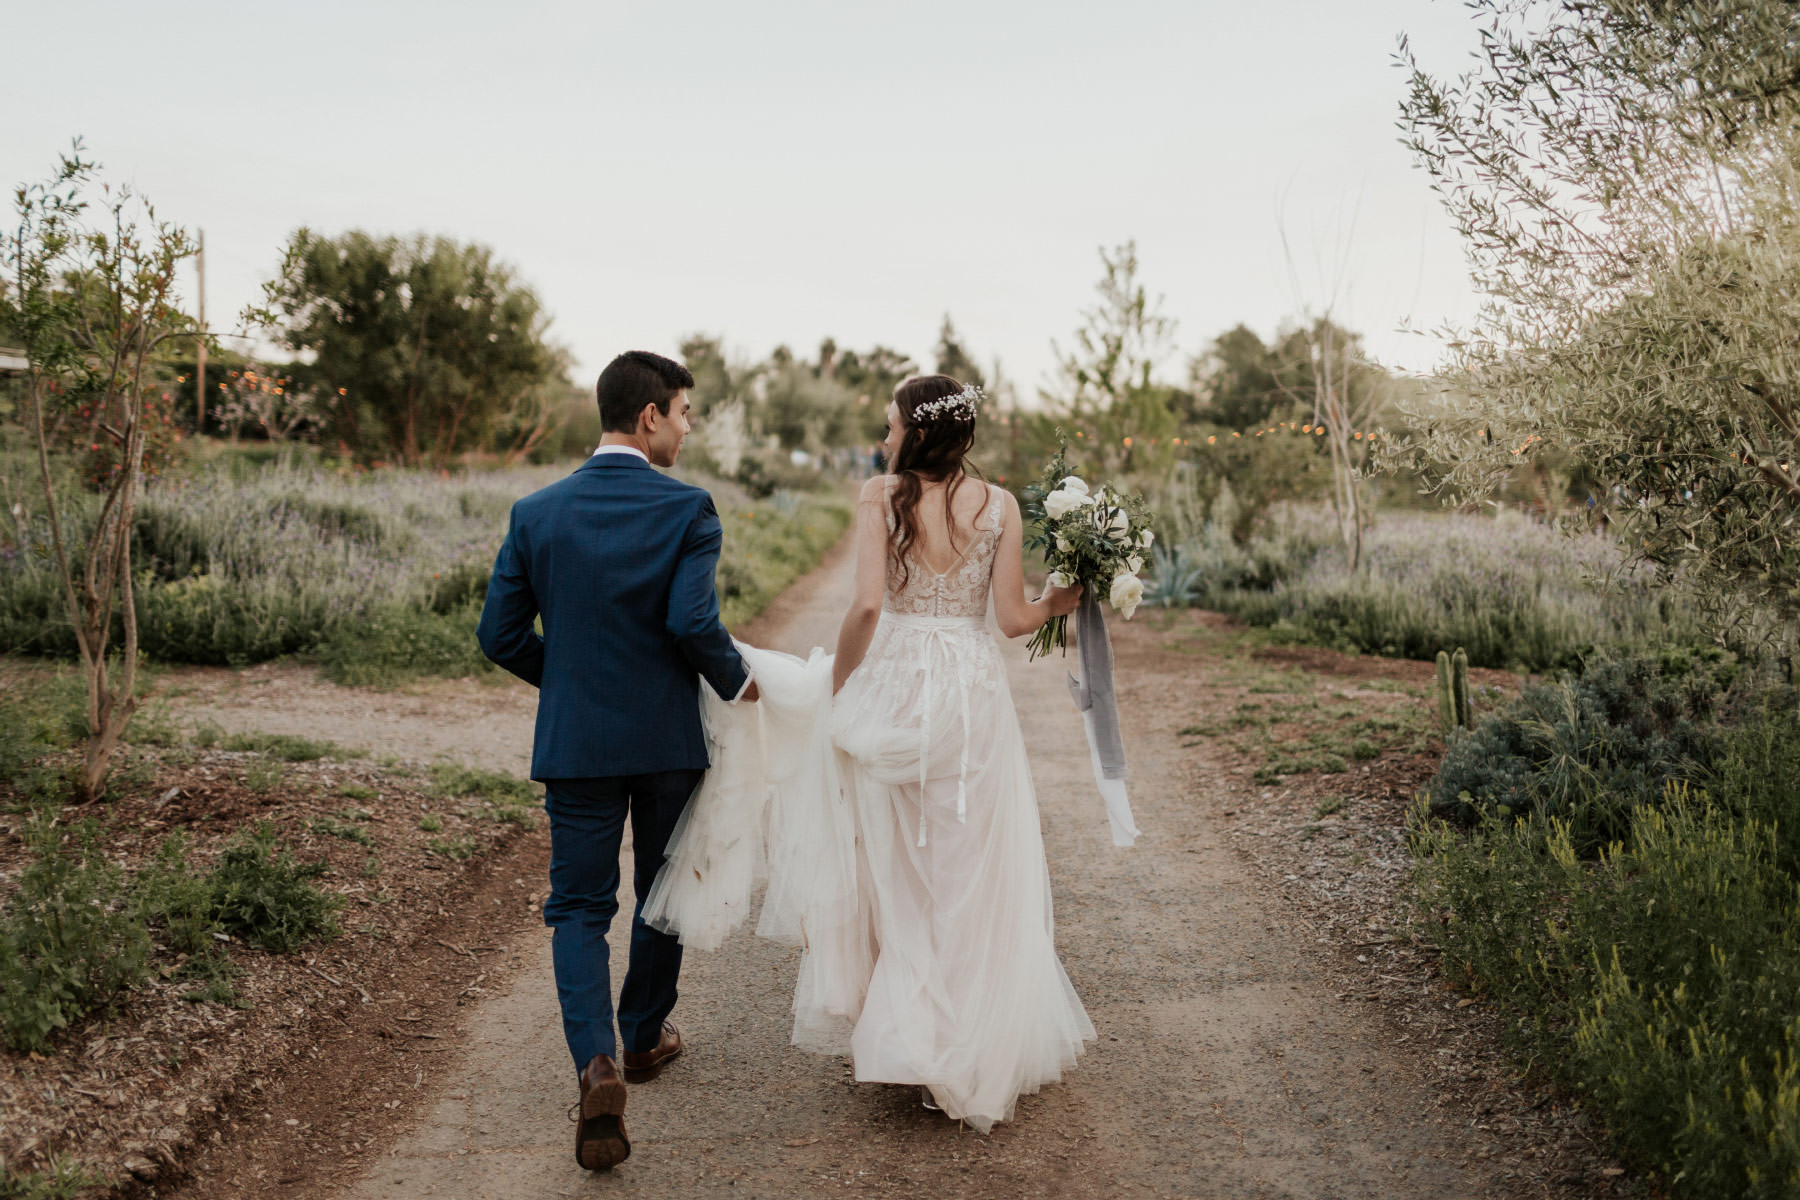 Bride wearing BHLDN lace dress